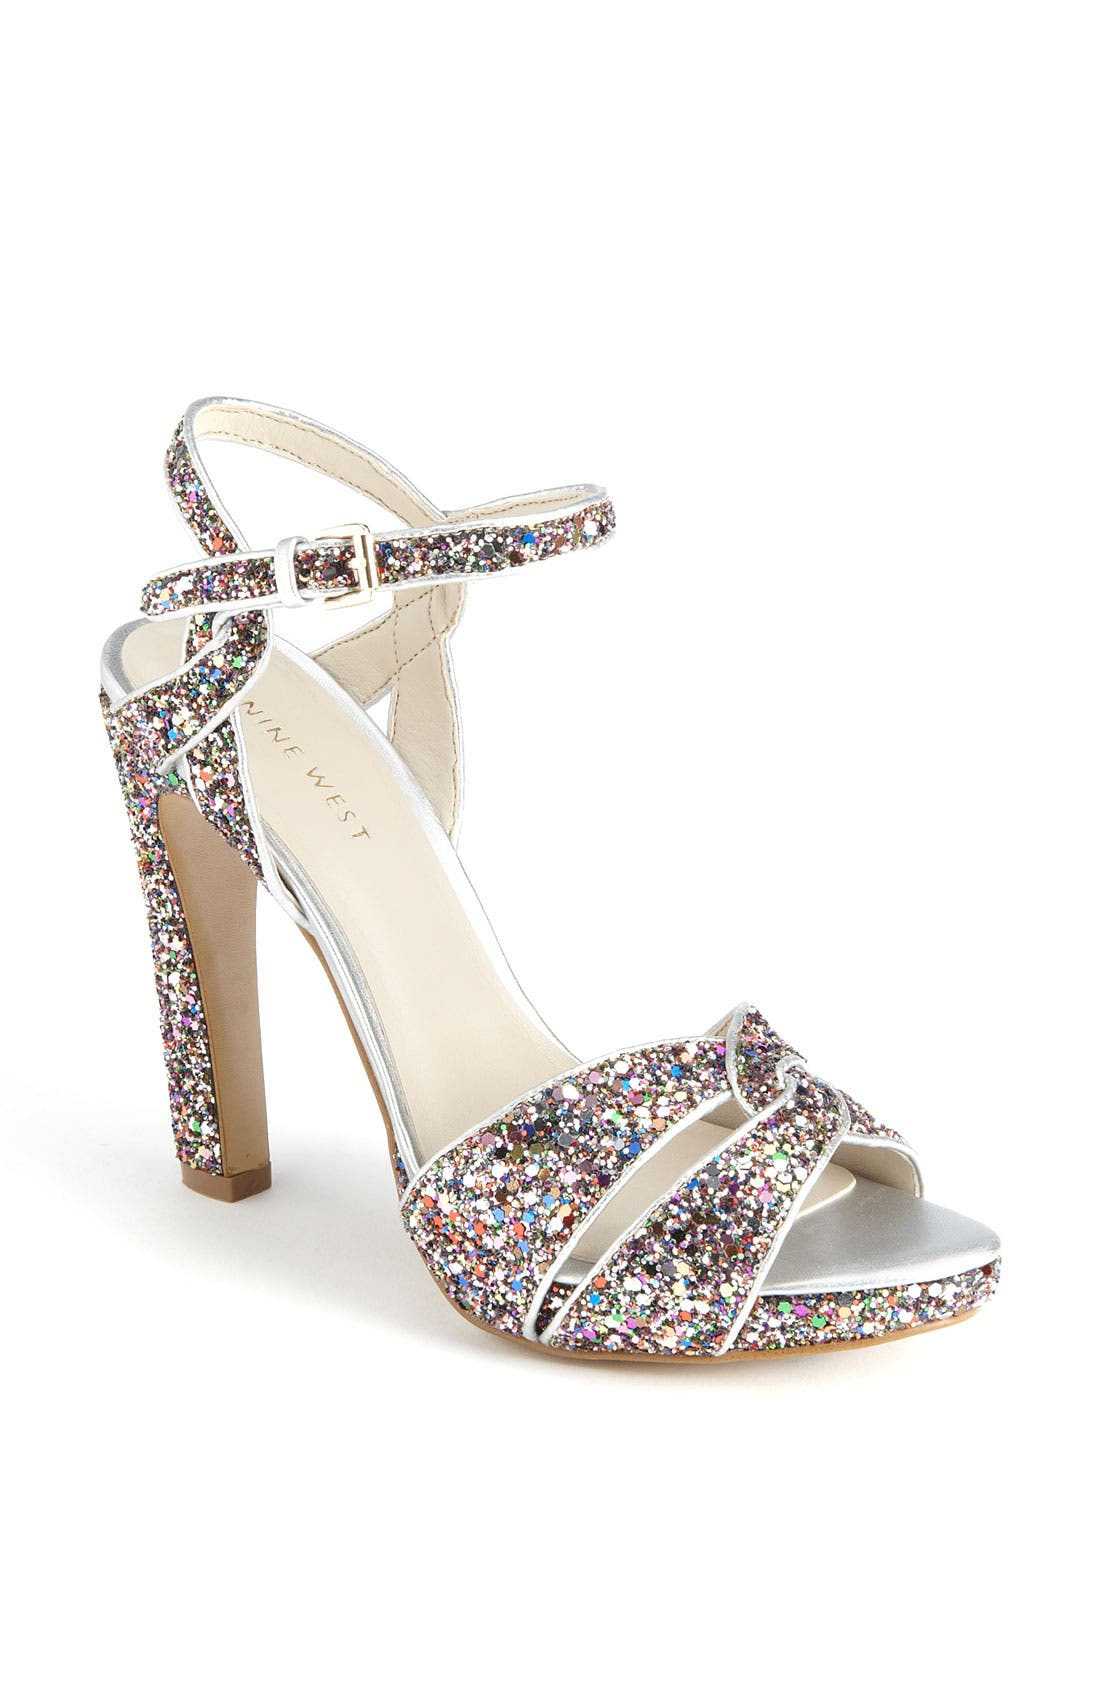 Alternate Image 1 Selected - Nine West 'Hotlist' Sandal